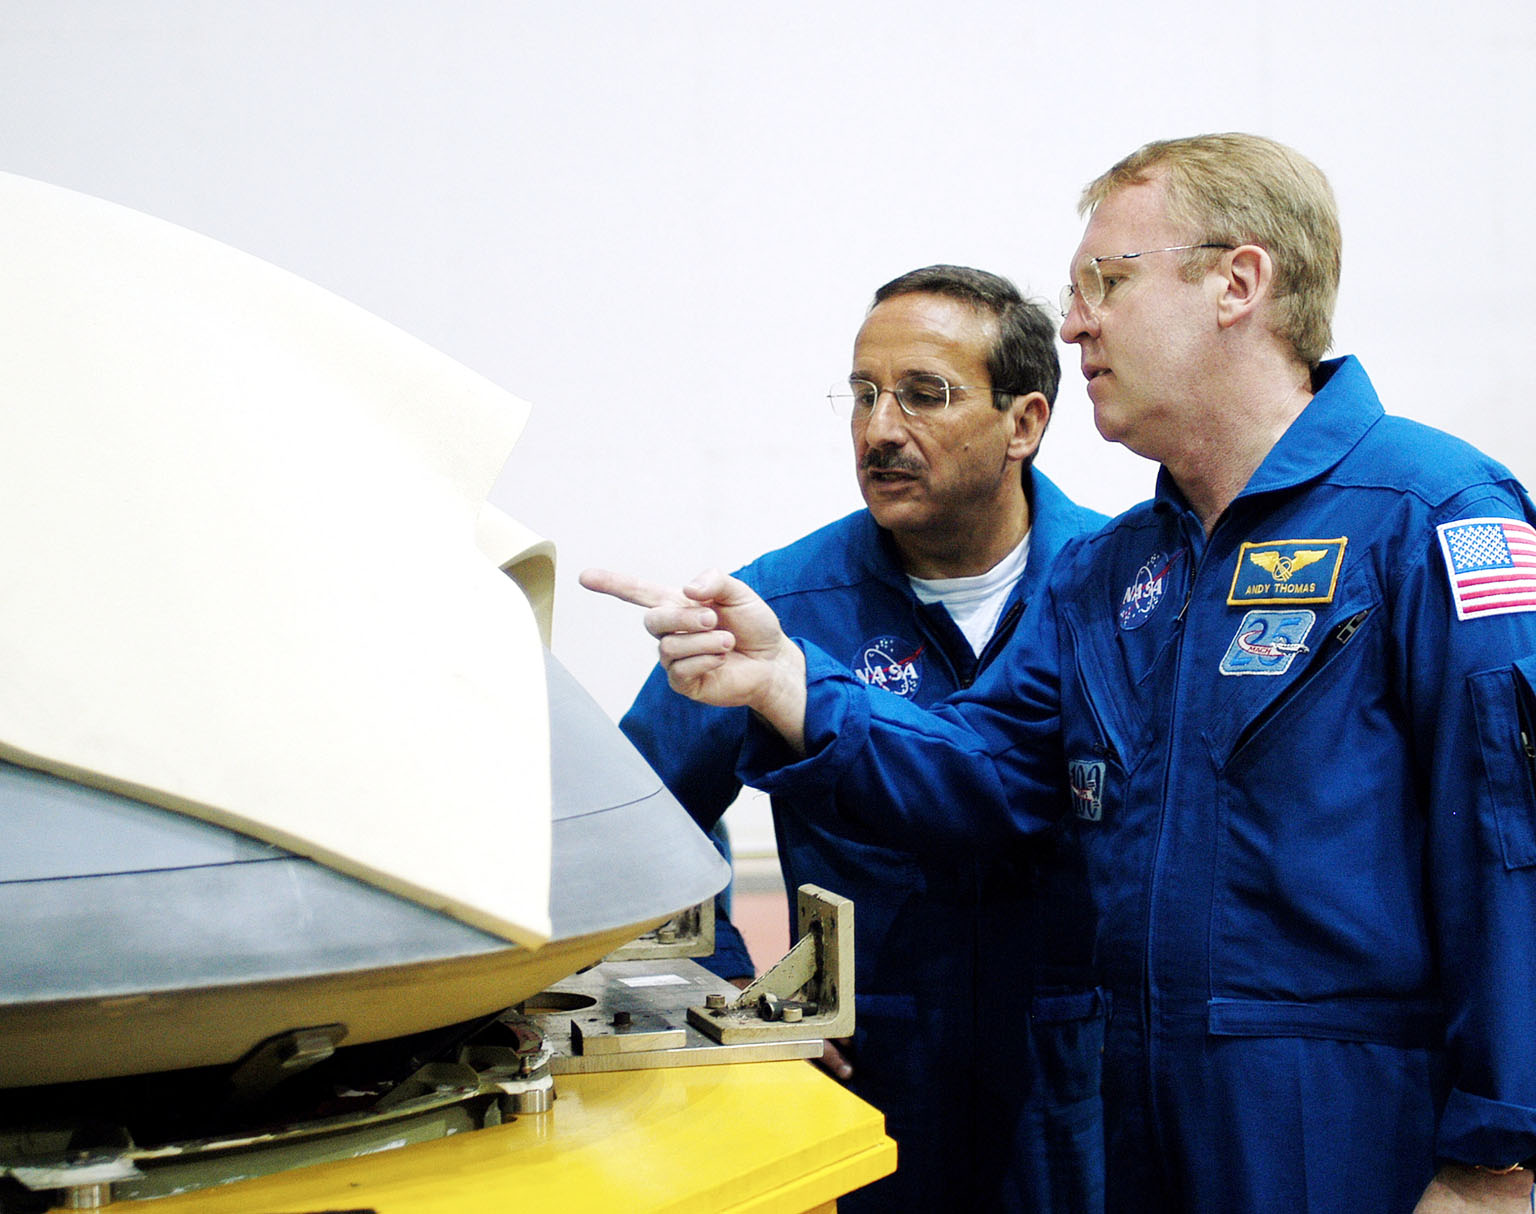 KENNEDY SPACE CENTER, FLA. - In the Orbiter Processing Facility, STS-114 Mission Specialists Charles Camarda and Andy Thomas, who were recently added to the crew, look at the nose cap recently removed from Atlantis. The STS-114 crew is at KSC to take part in crew equipment and orbiter familiarization.